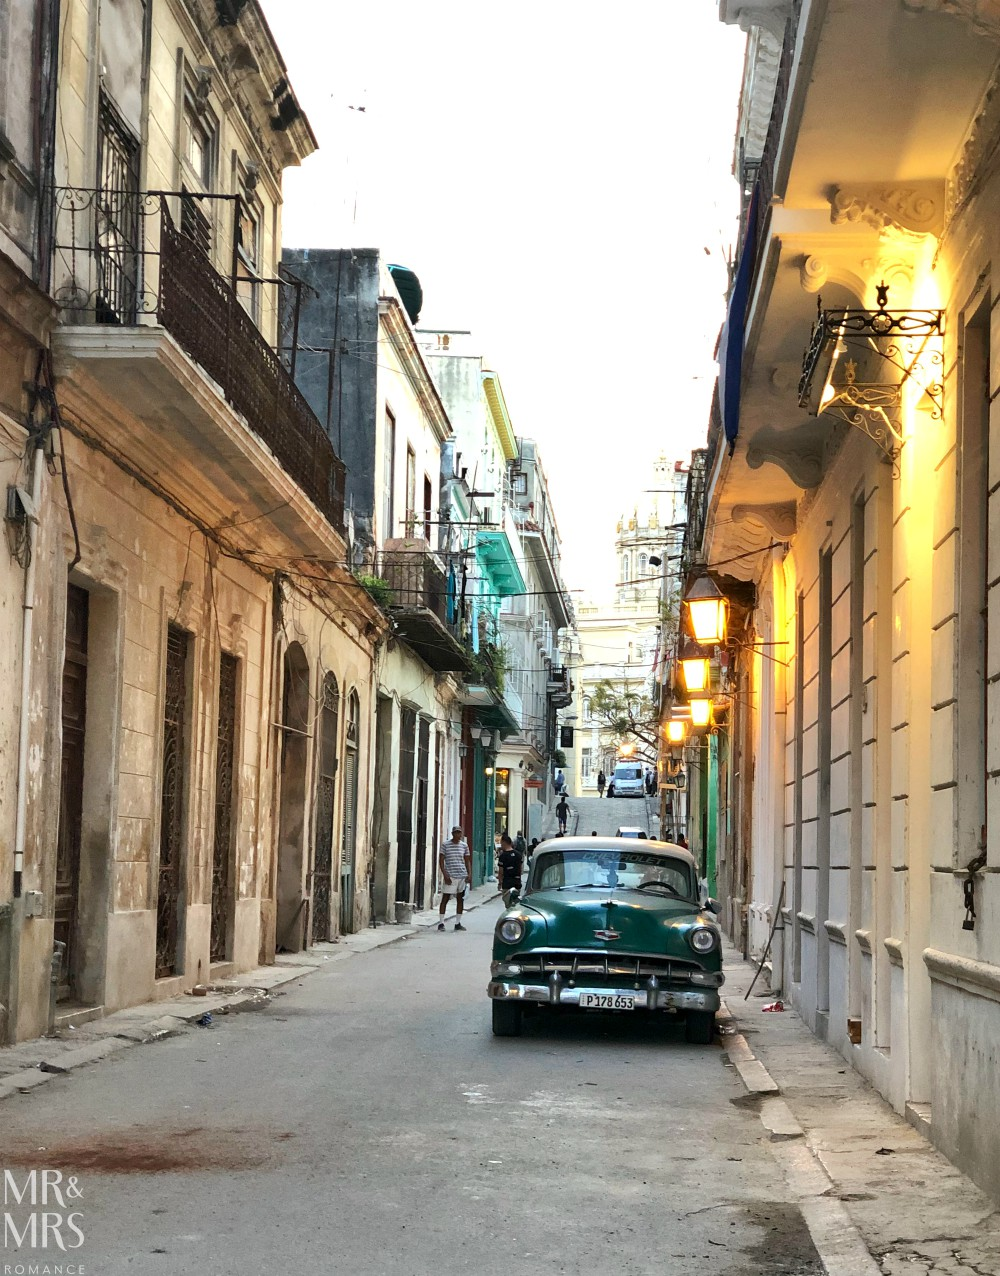 Havana Cuba - how much has Cuba changed? Old cars